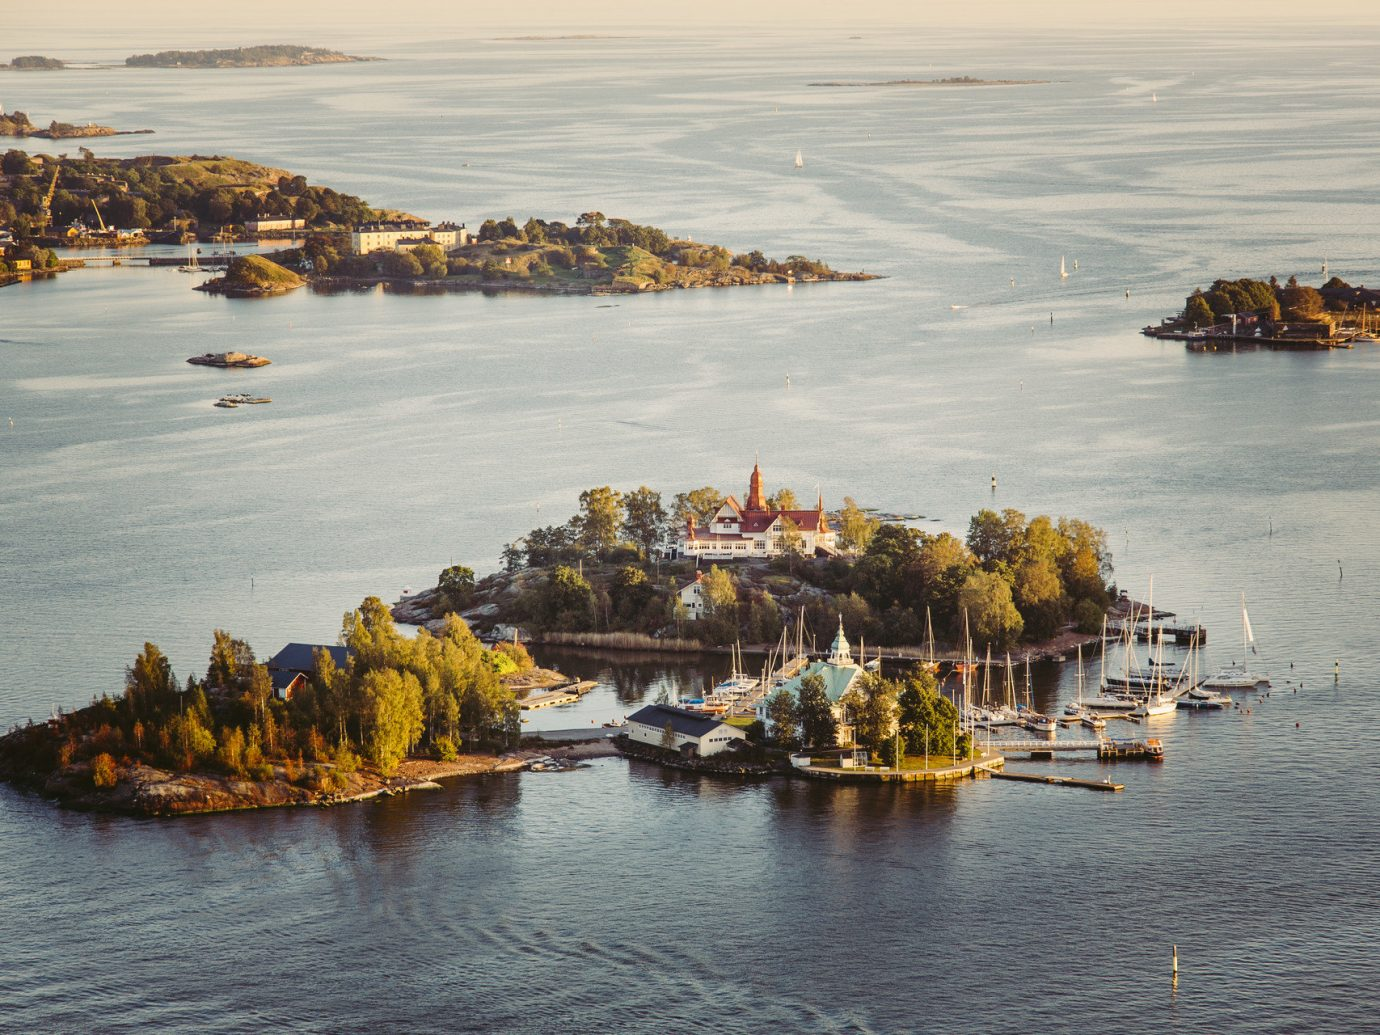 Finland Trip Ideas water outdoor Boat Sea shore Coast Harbor body of water Ocean scene reflection Beach bay vehicle boating Nature wave cove islet watercraft several